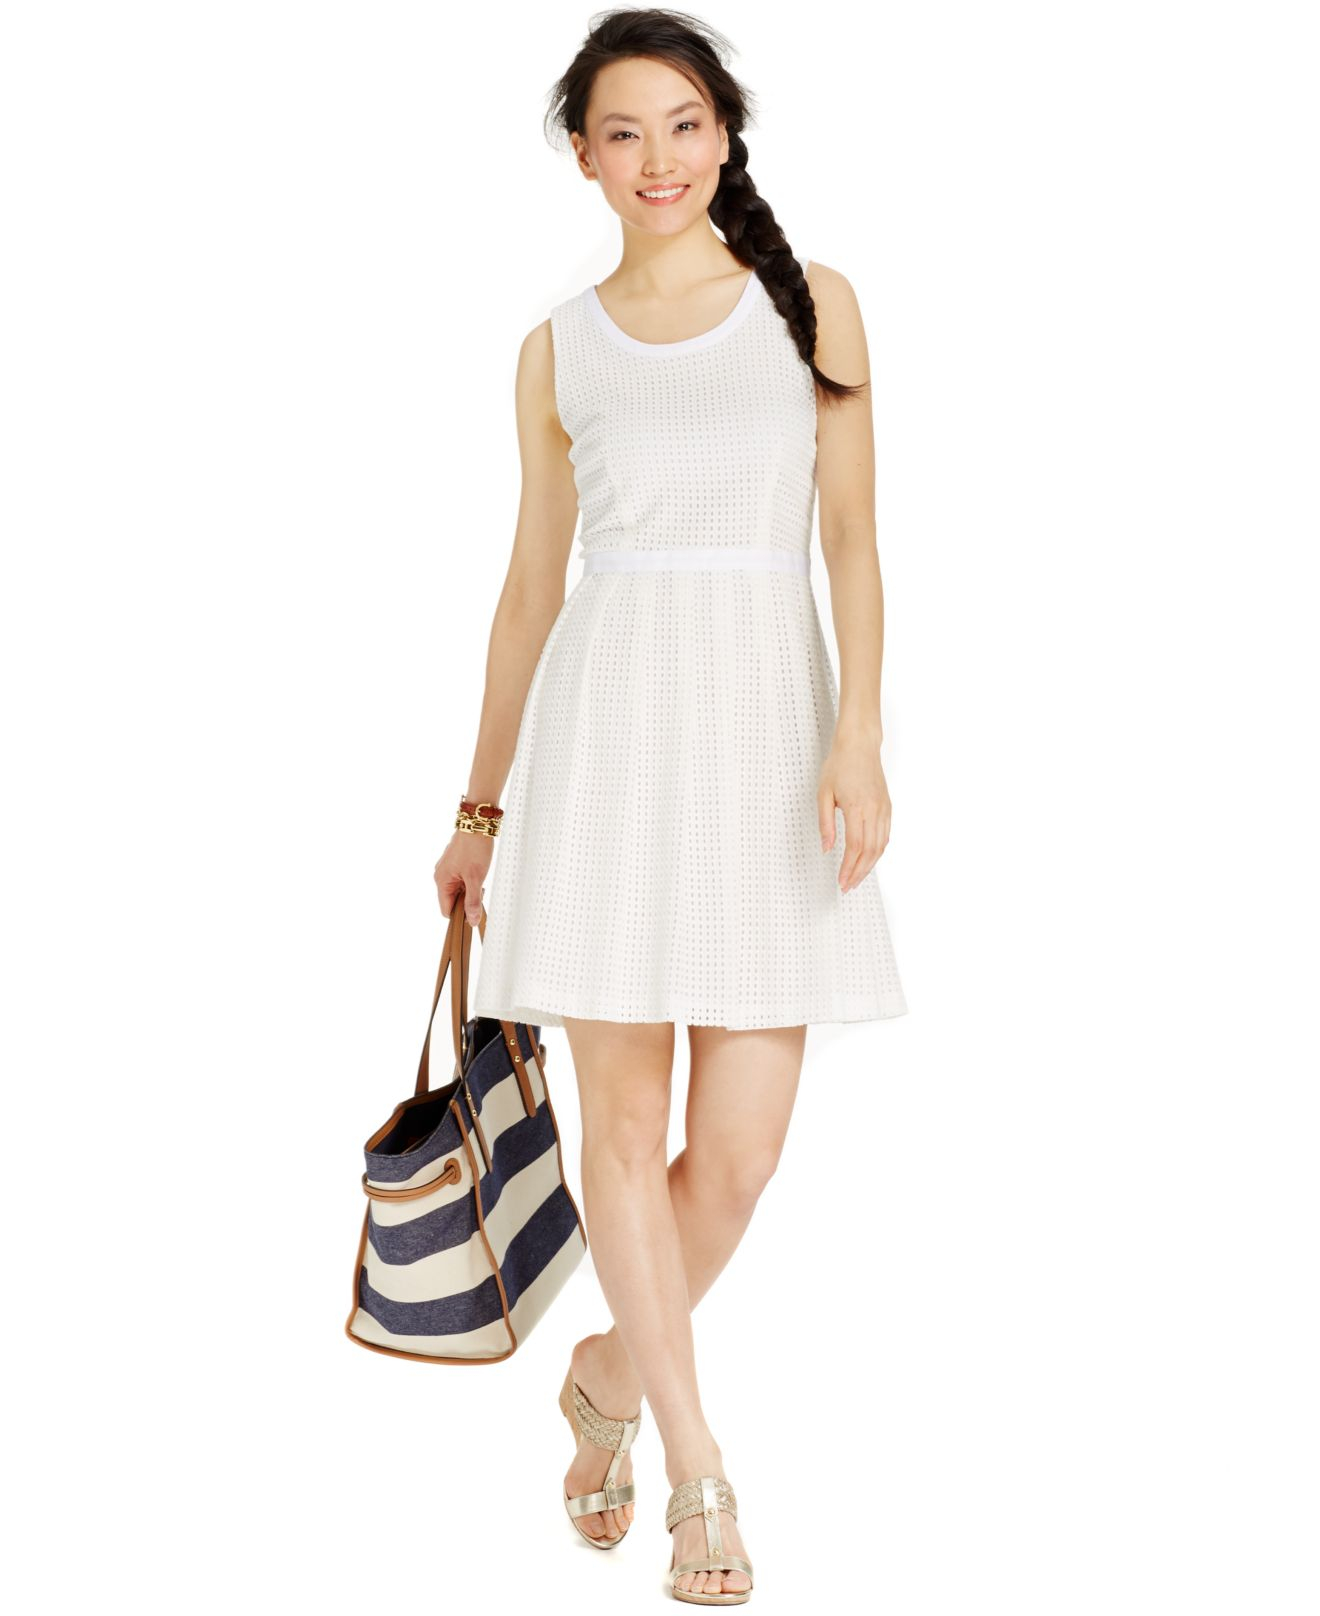 6b9999f5 Tommy Hilfiger Sleeveless Eyelet A-line Dress in White - Lyst